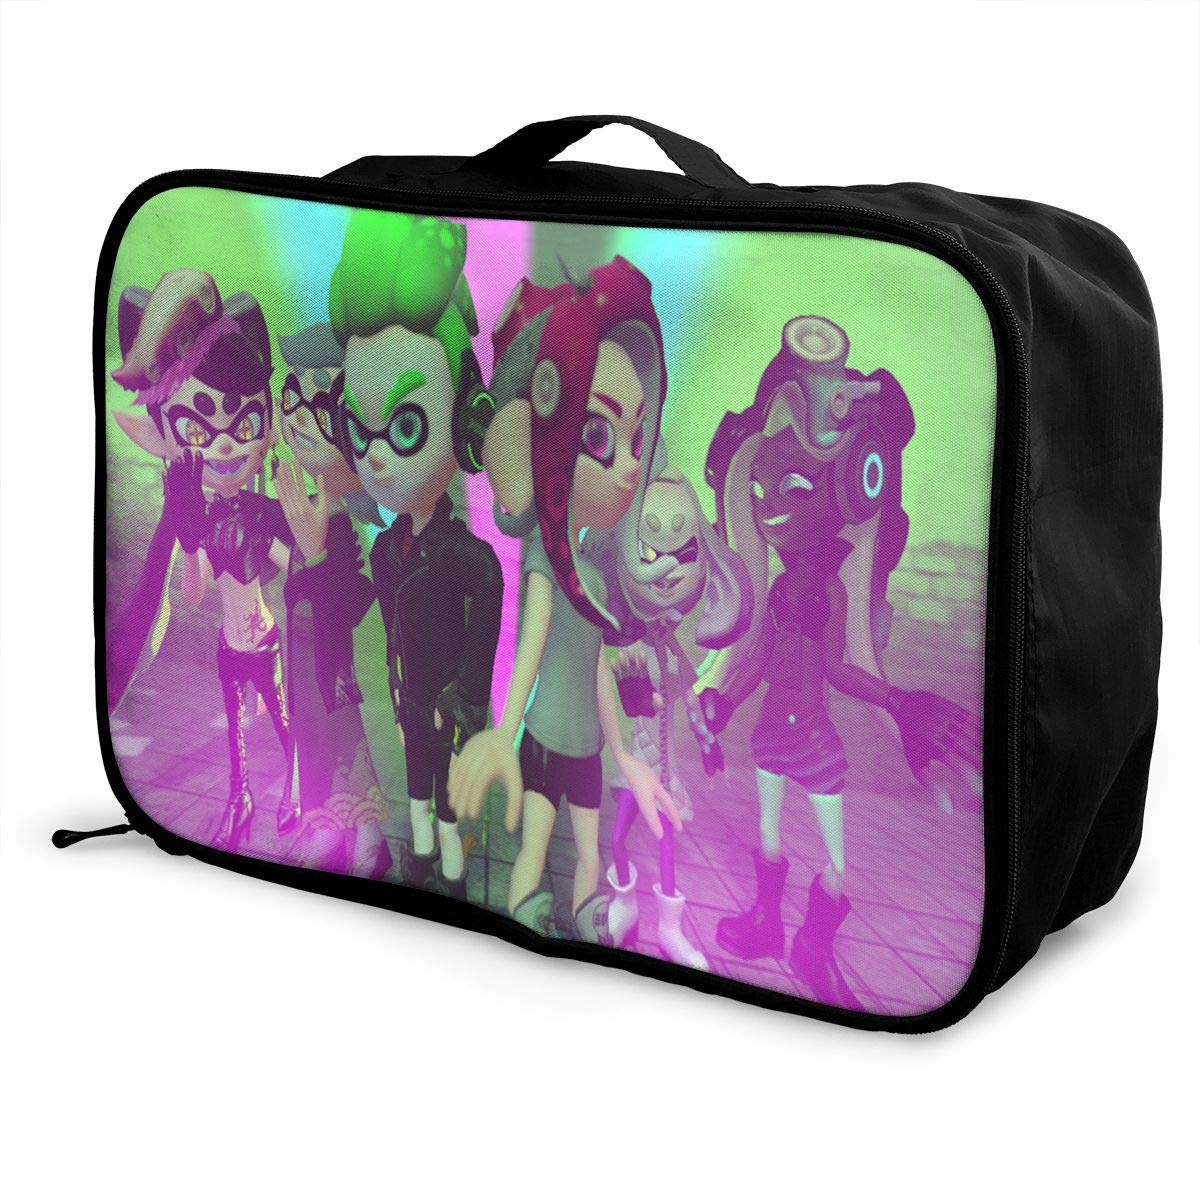 BOKAIKAI1306 Handsome S-Splatoon 2 Unisex Adult Fashion Lightweight Large Capacity Portable Large Travel Duffel Bag Men Womens Luggage Bag 3D Printed Customized Boarding Box